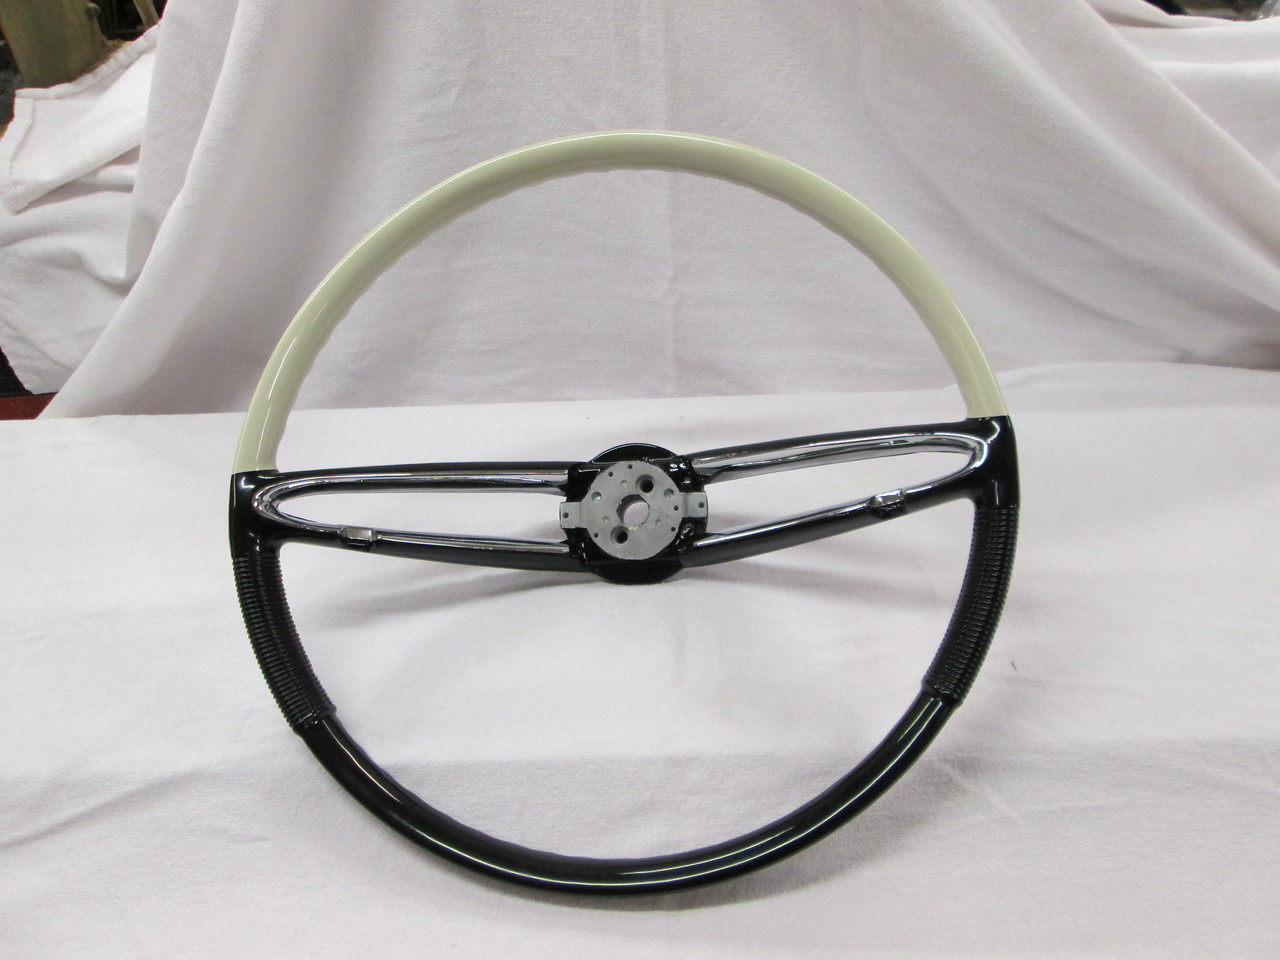 Steering wheel that we rebuilt by Kochs in Action Califorina.